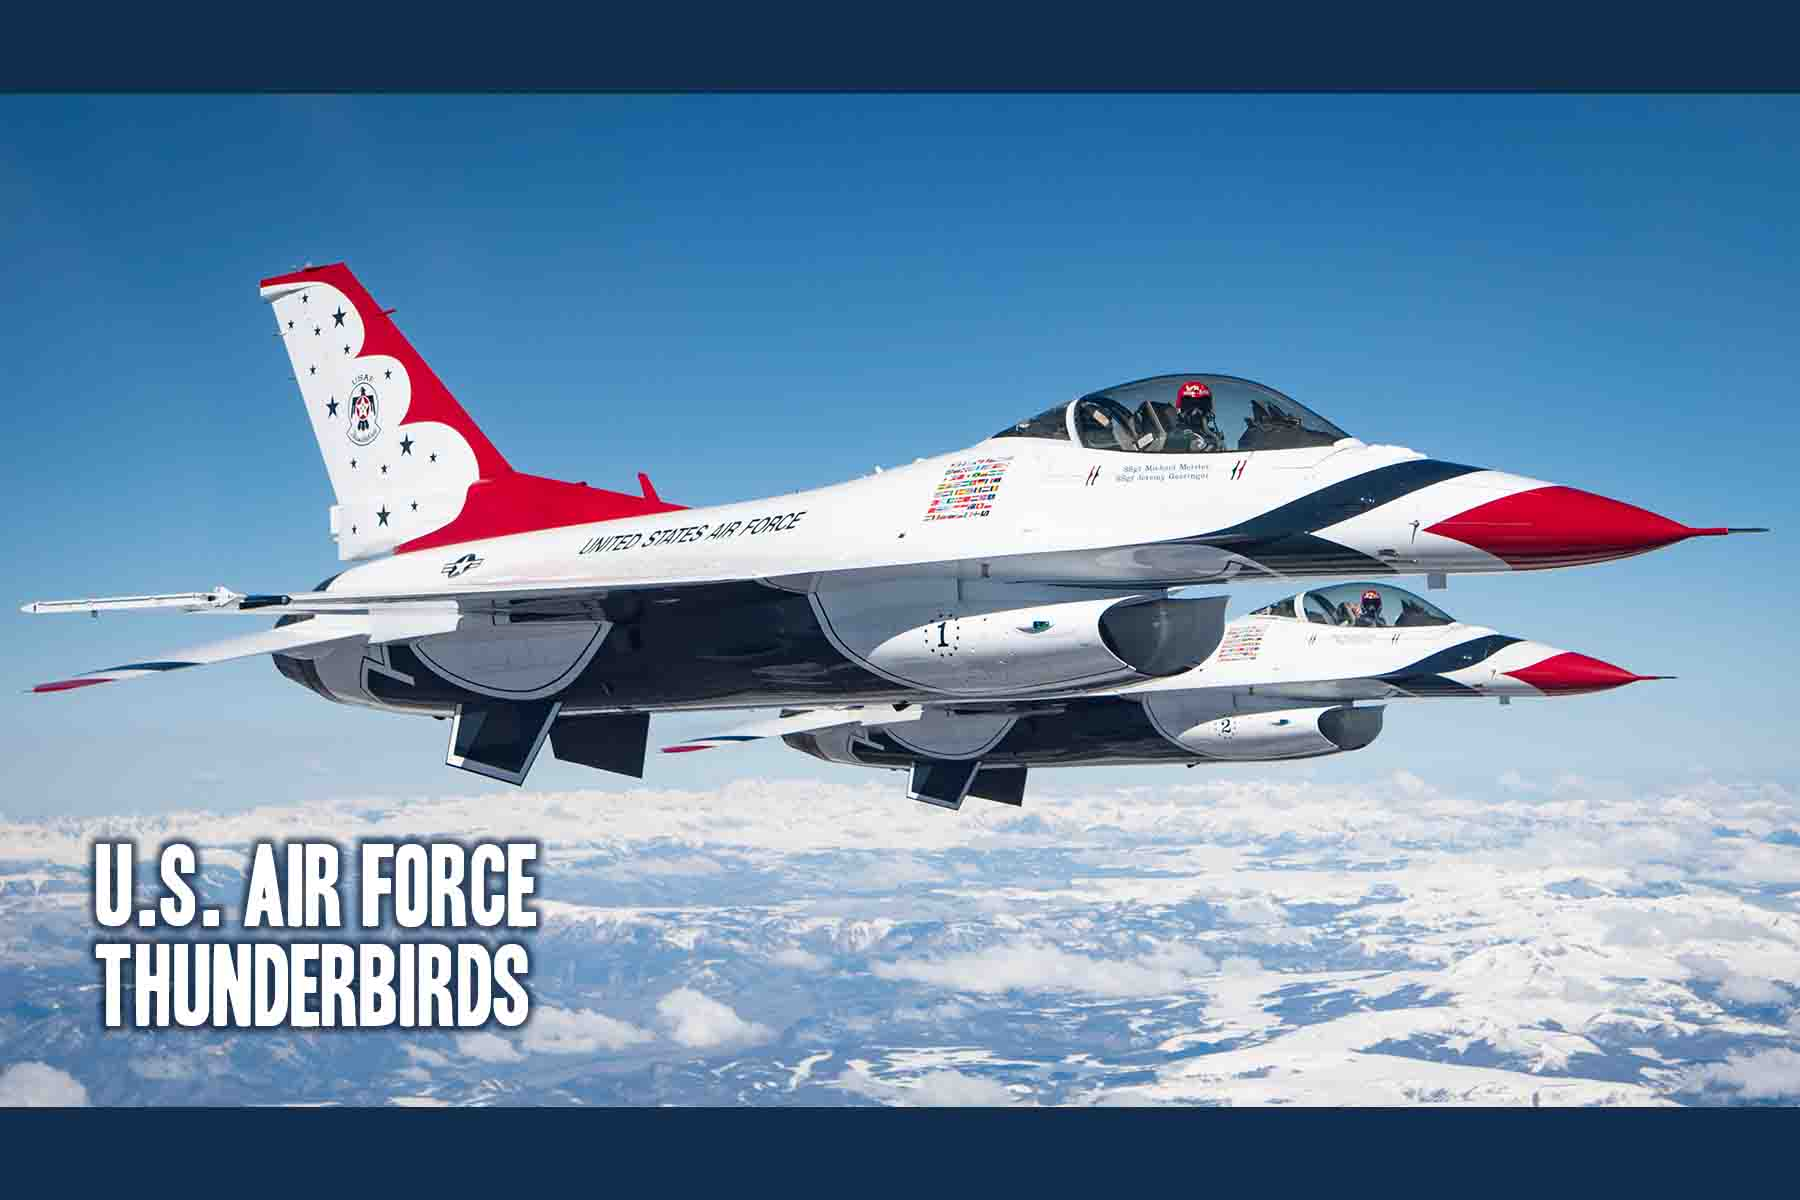 Link to U.S. Air Force Thunderbirds